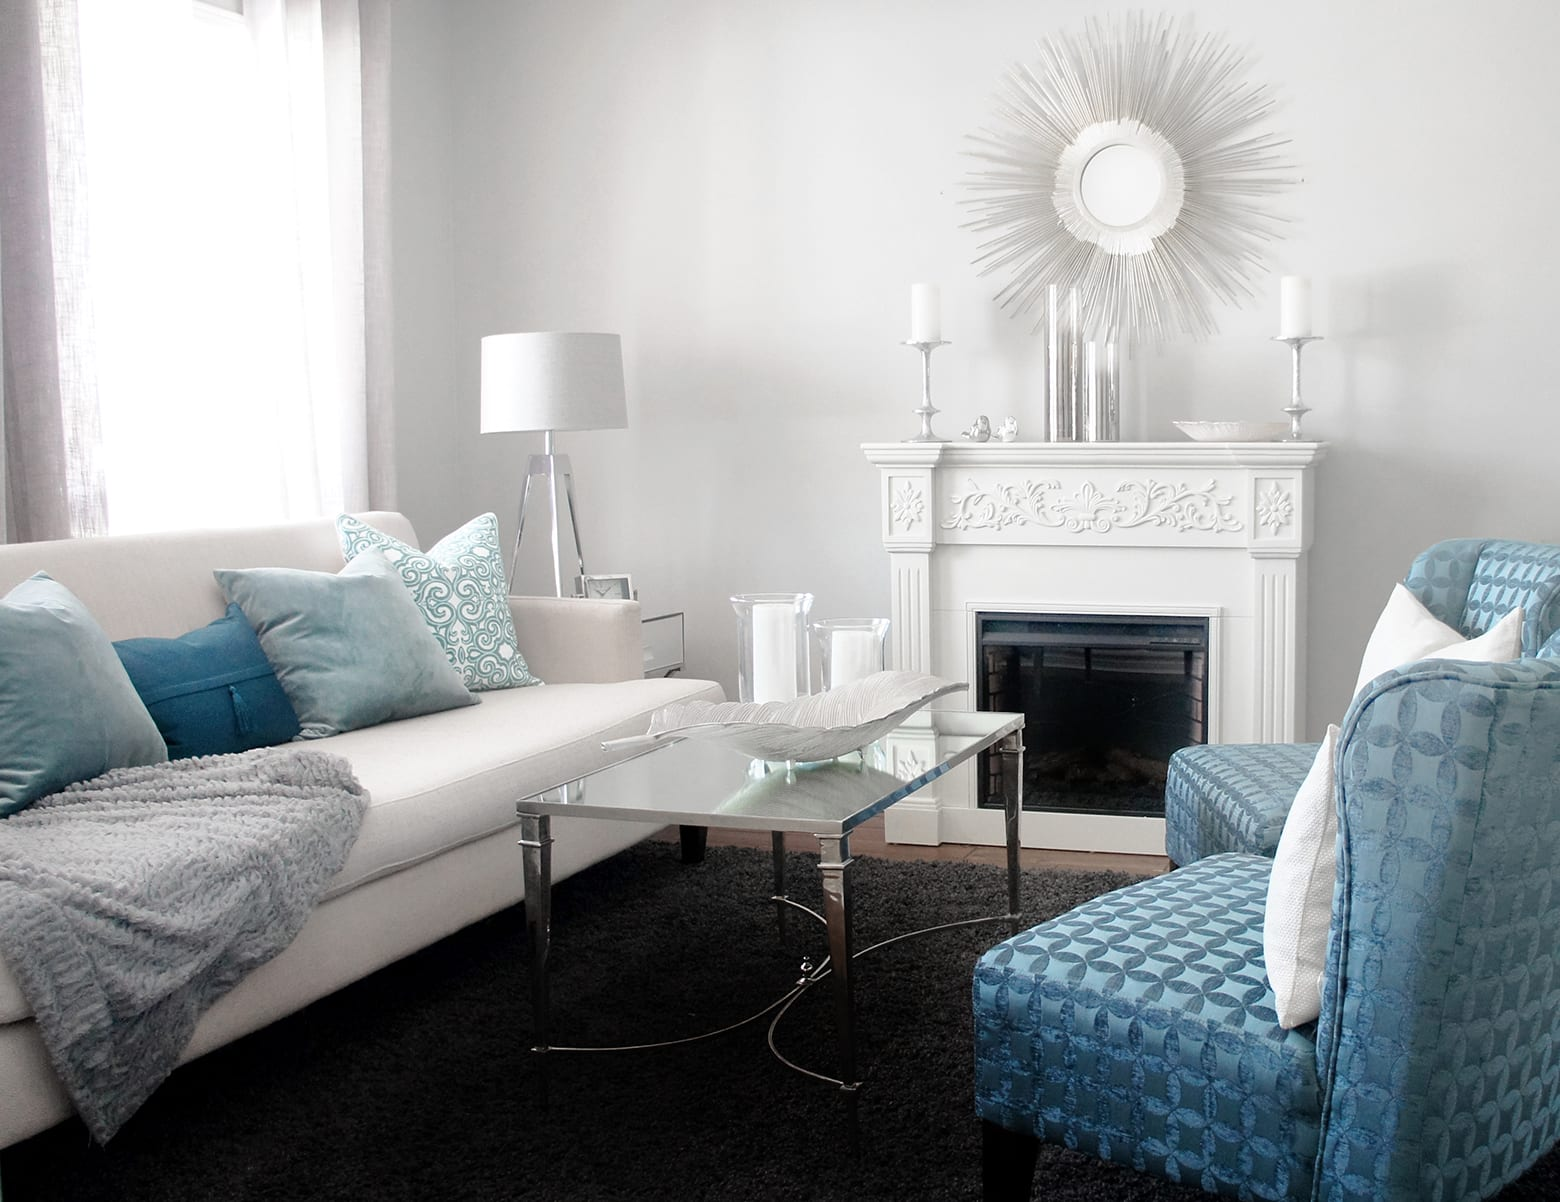 interior design, toronto designer, interior decorating, oakville decorating, design consultant